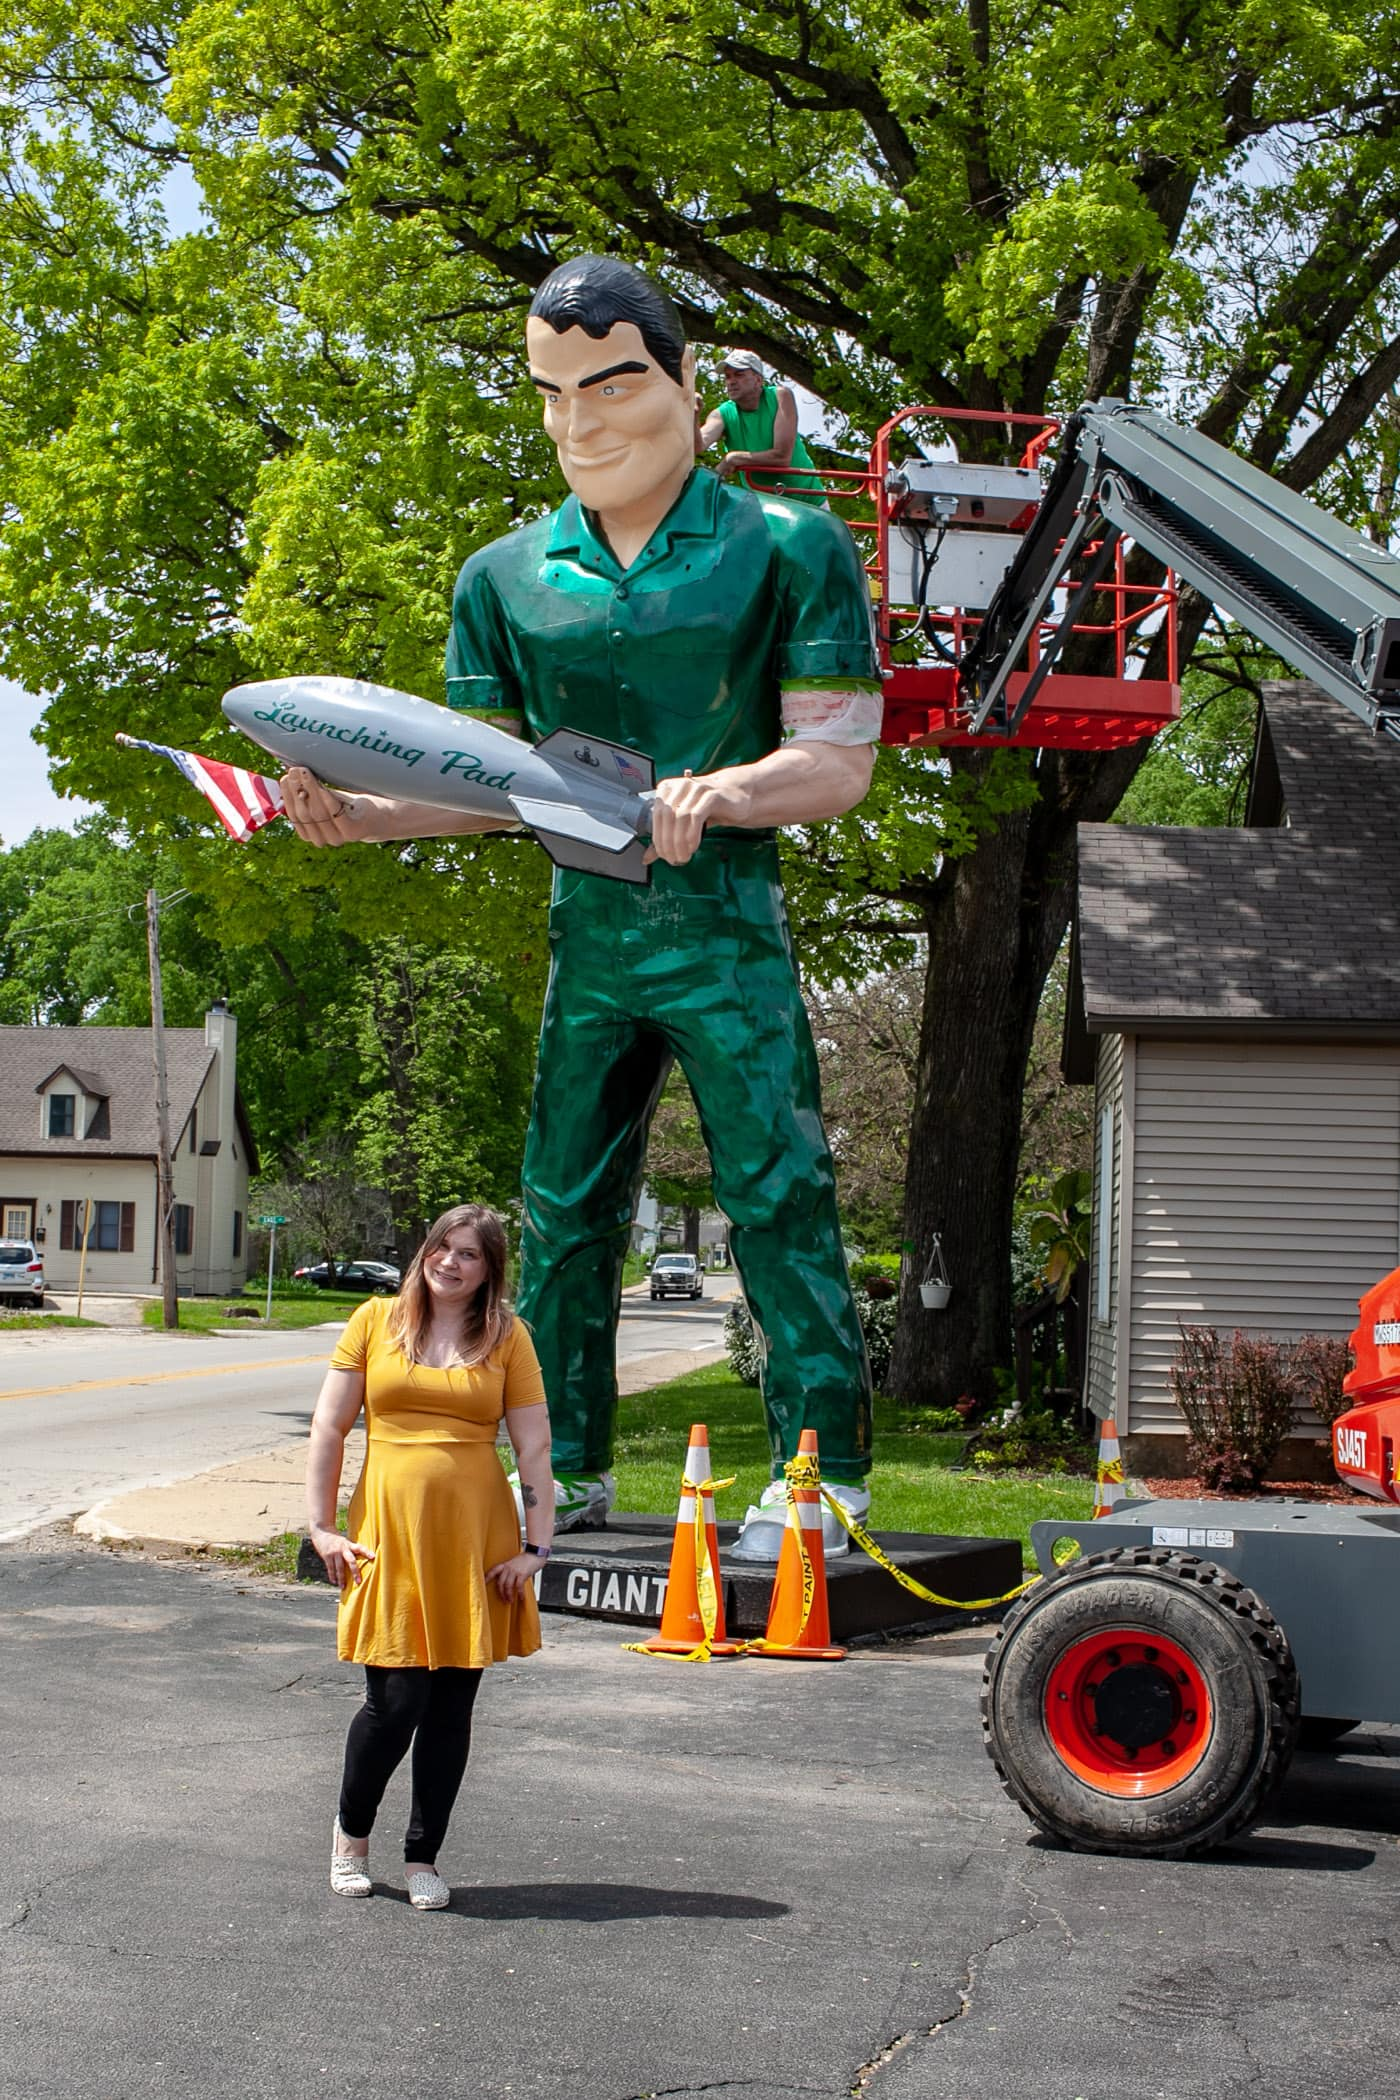 Val with the Gemini Giant Muffler man without his helmet on at the Launching Pad Drive In in Wilmington, Illinois on Route 66.